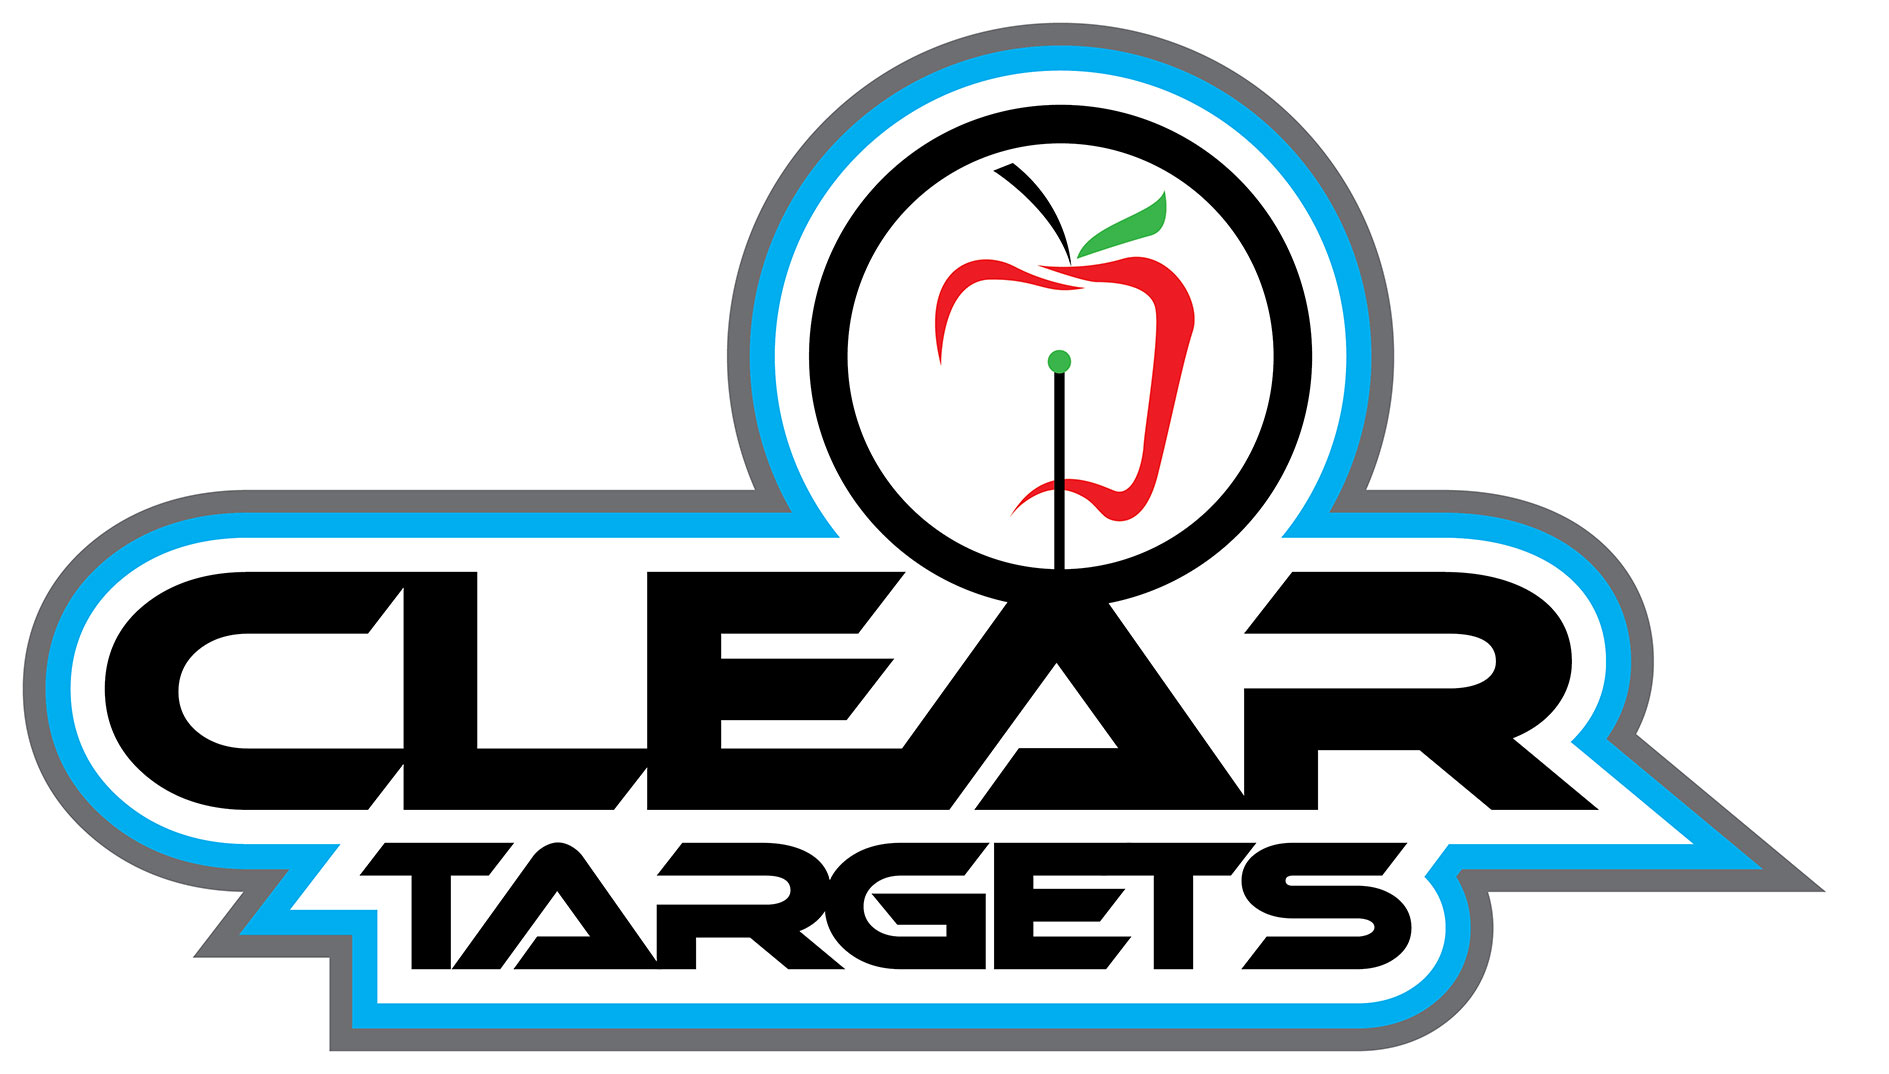 Clear Targets logo by Studio 9017